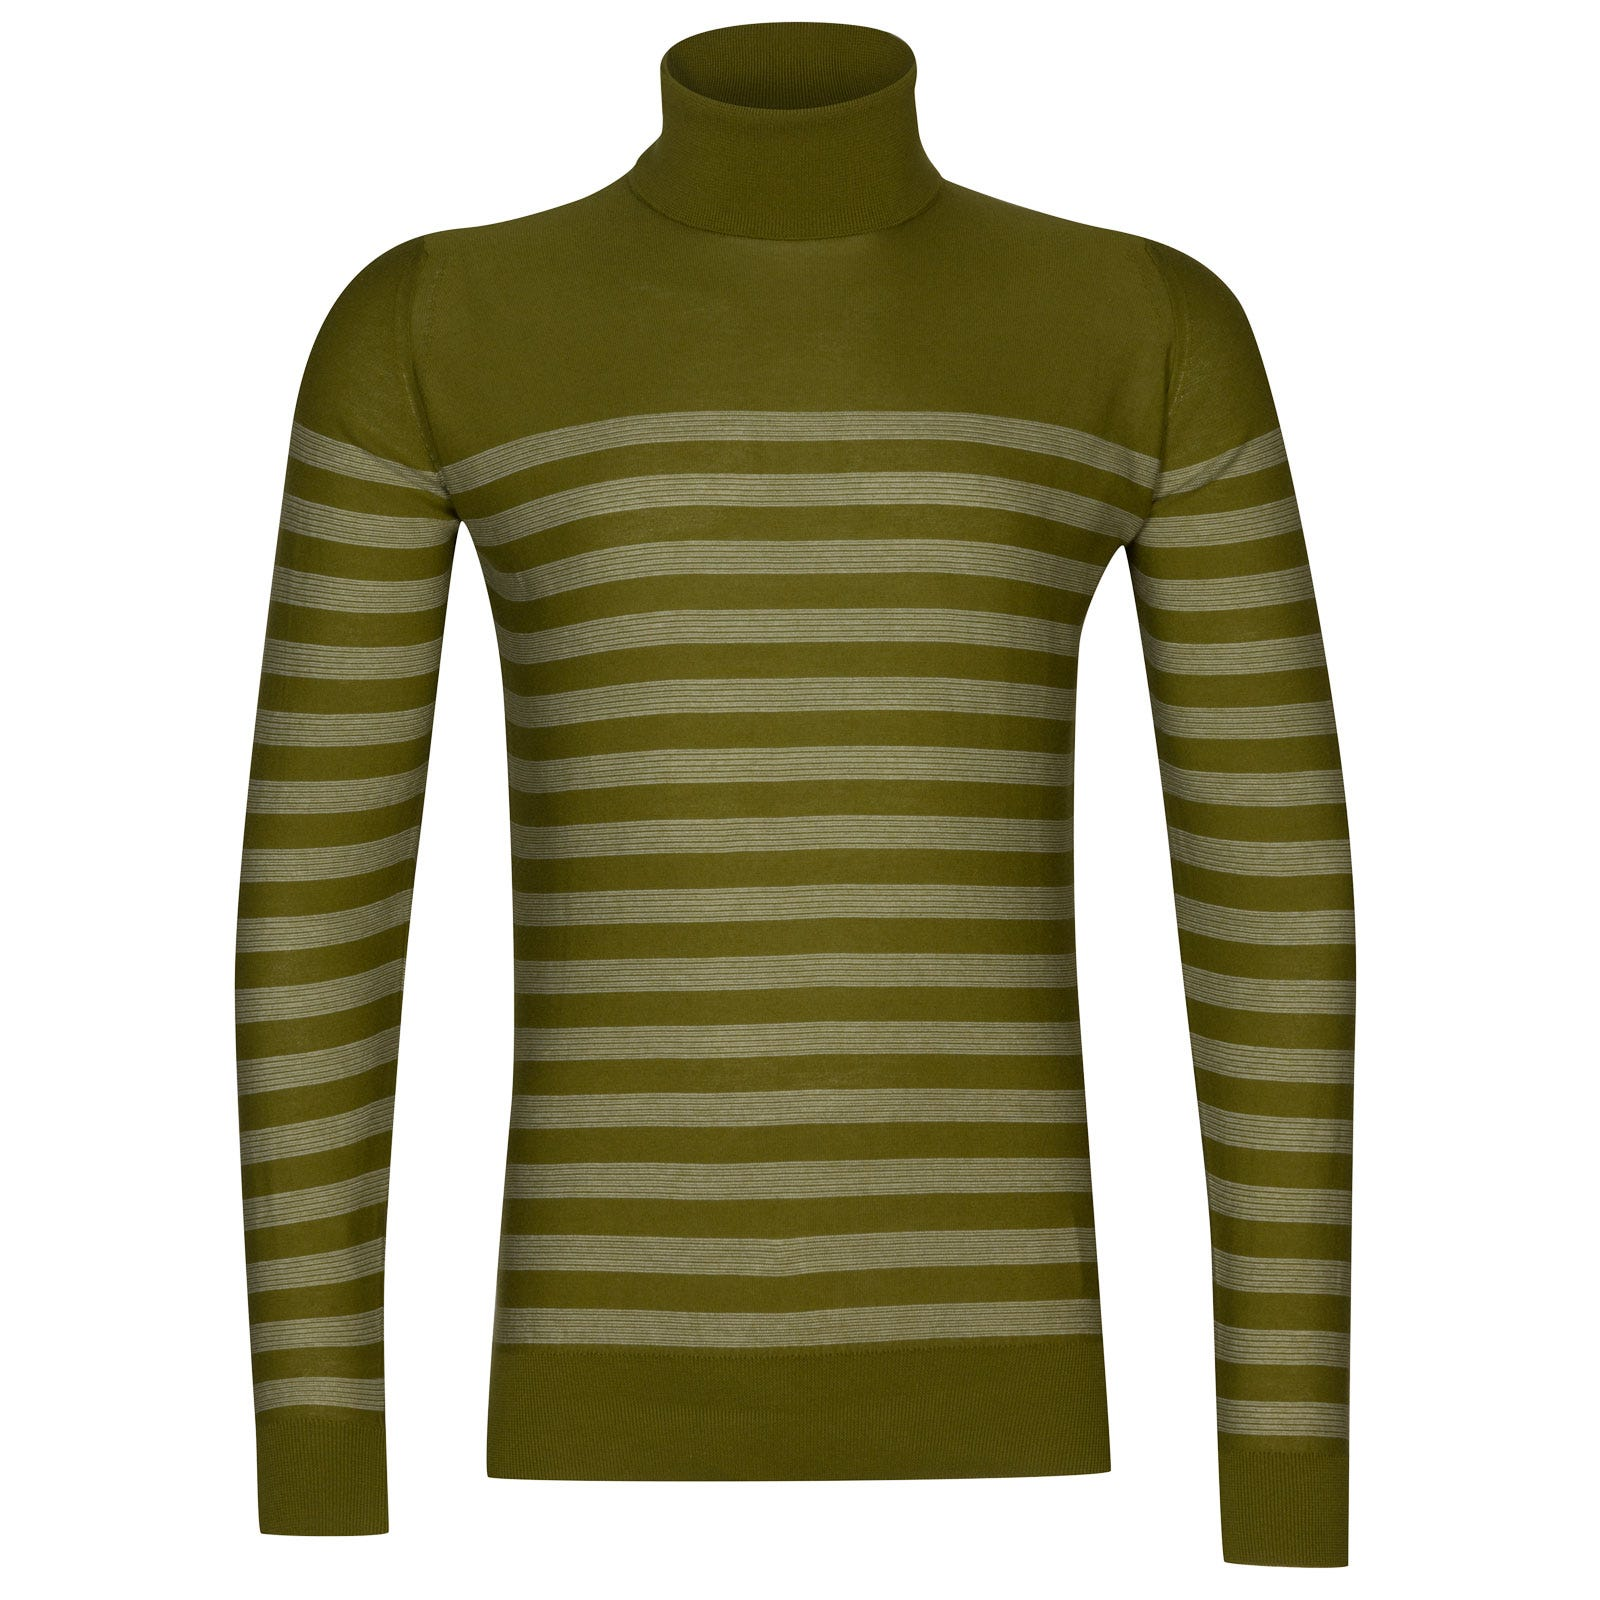 John Smedley tenby Sea Island Cotton Sweater in Lumsdale